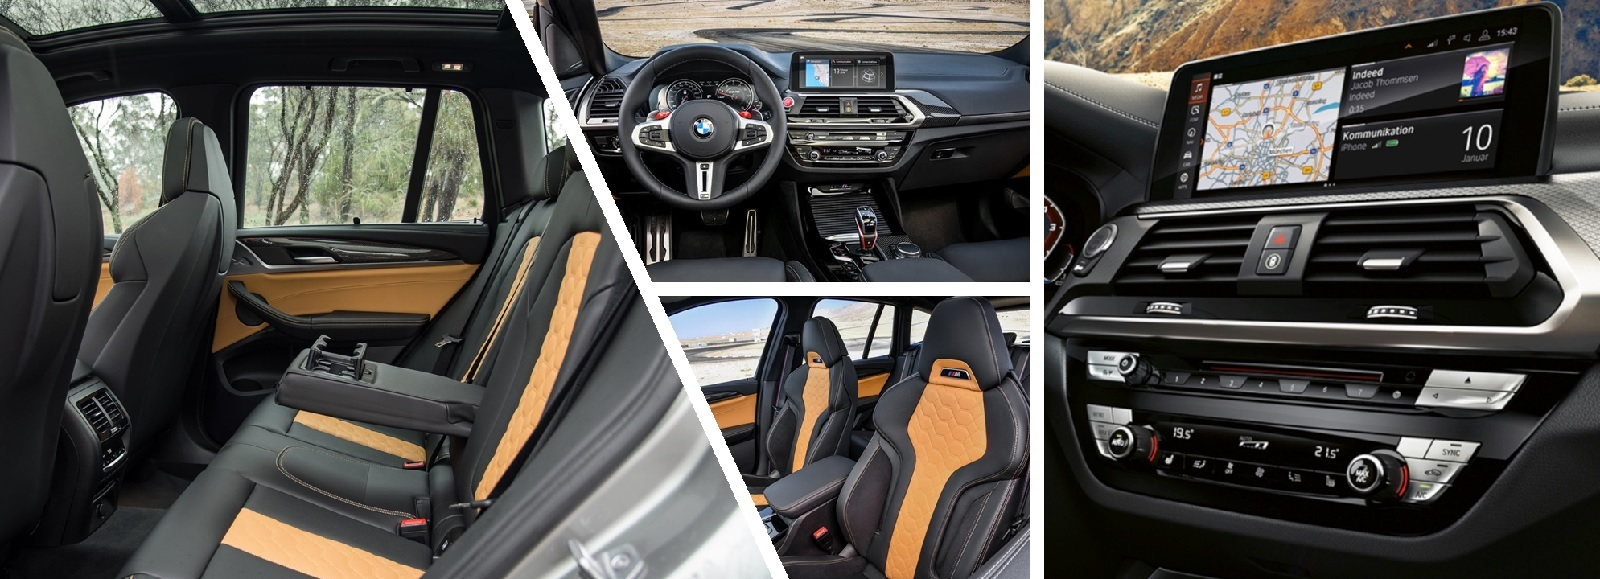 2020 BMW X3 M in Vancouver Interior Design and Infotainment